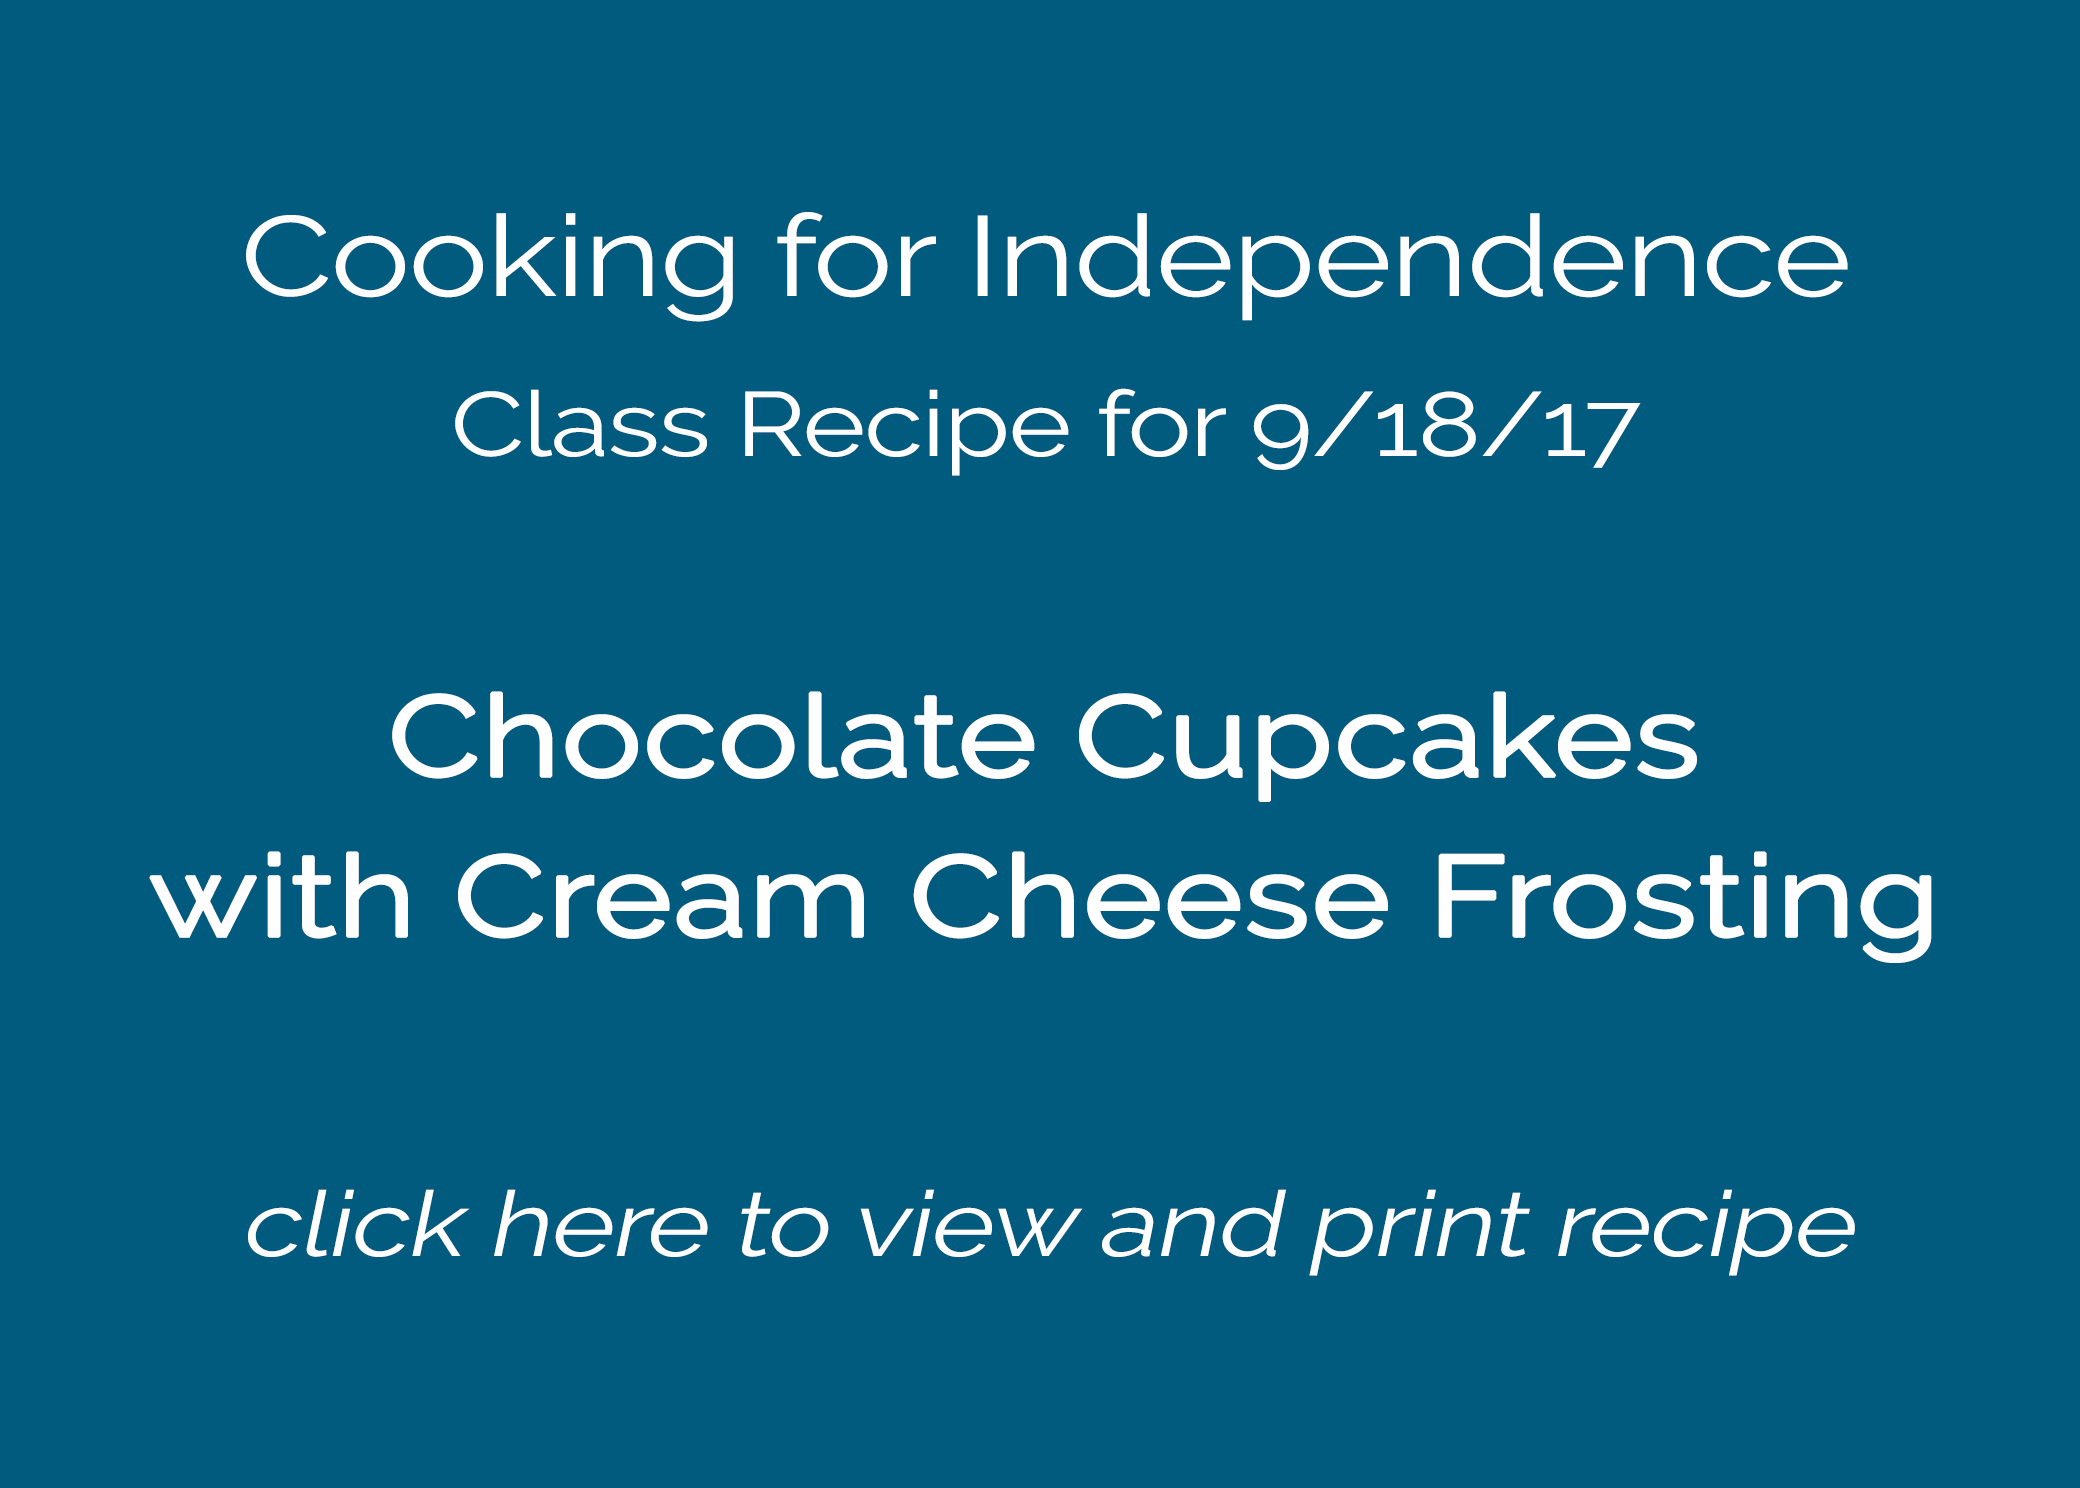 click here to view and print recipe